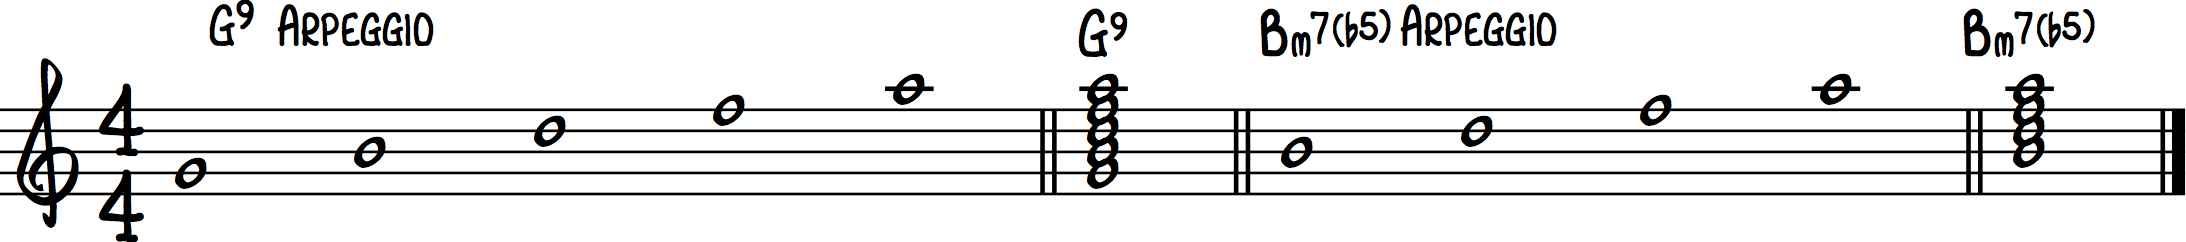 7th Scales Dom7 And Half Diminished Chords Jazz Guitar Elements Blog